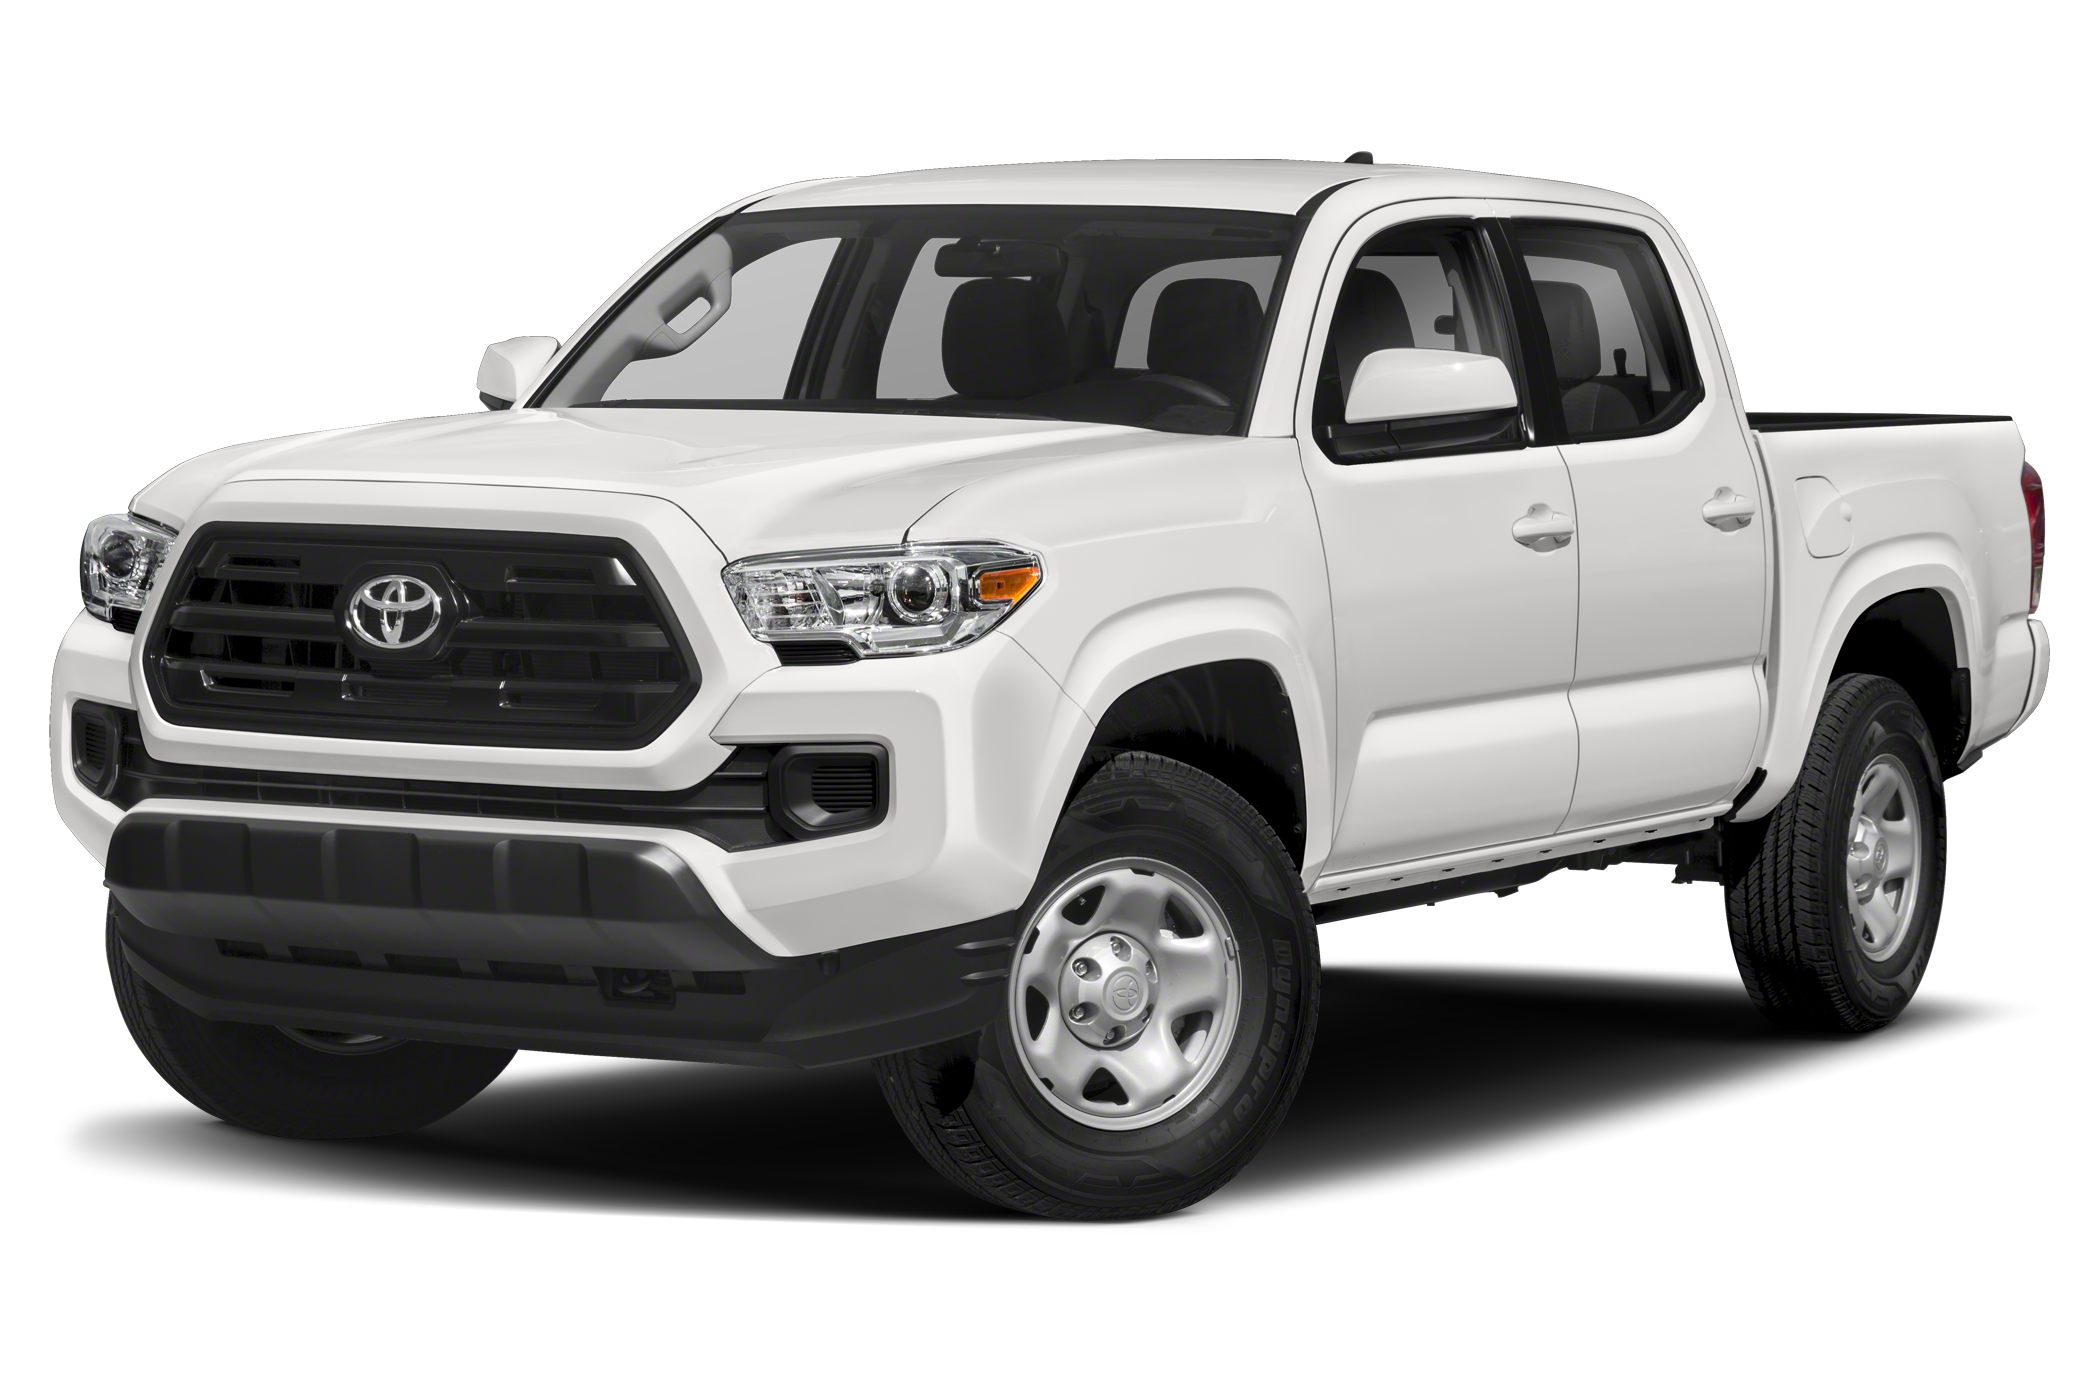 Toyota Tacoma Used Denver Black Toyota Tacoma 2003 Scam. Toyota. Wiring Schematic | Wiring ...